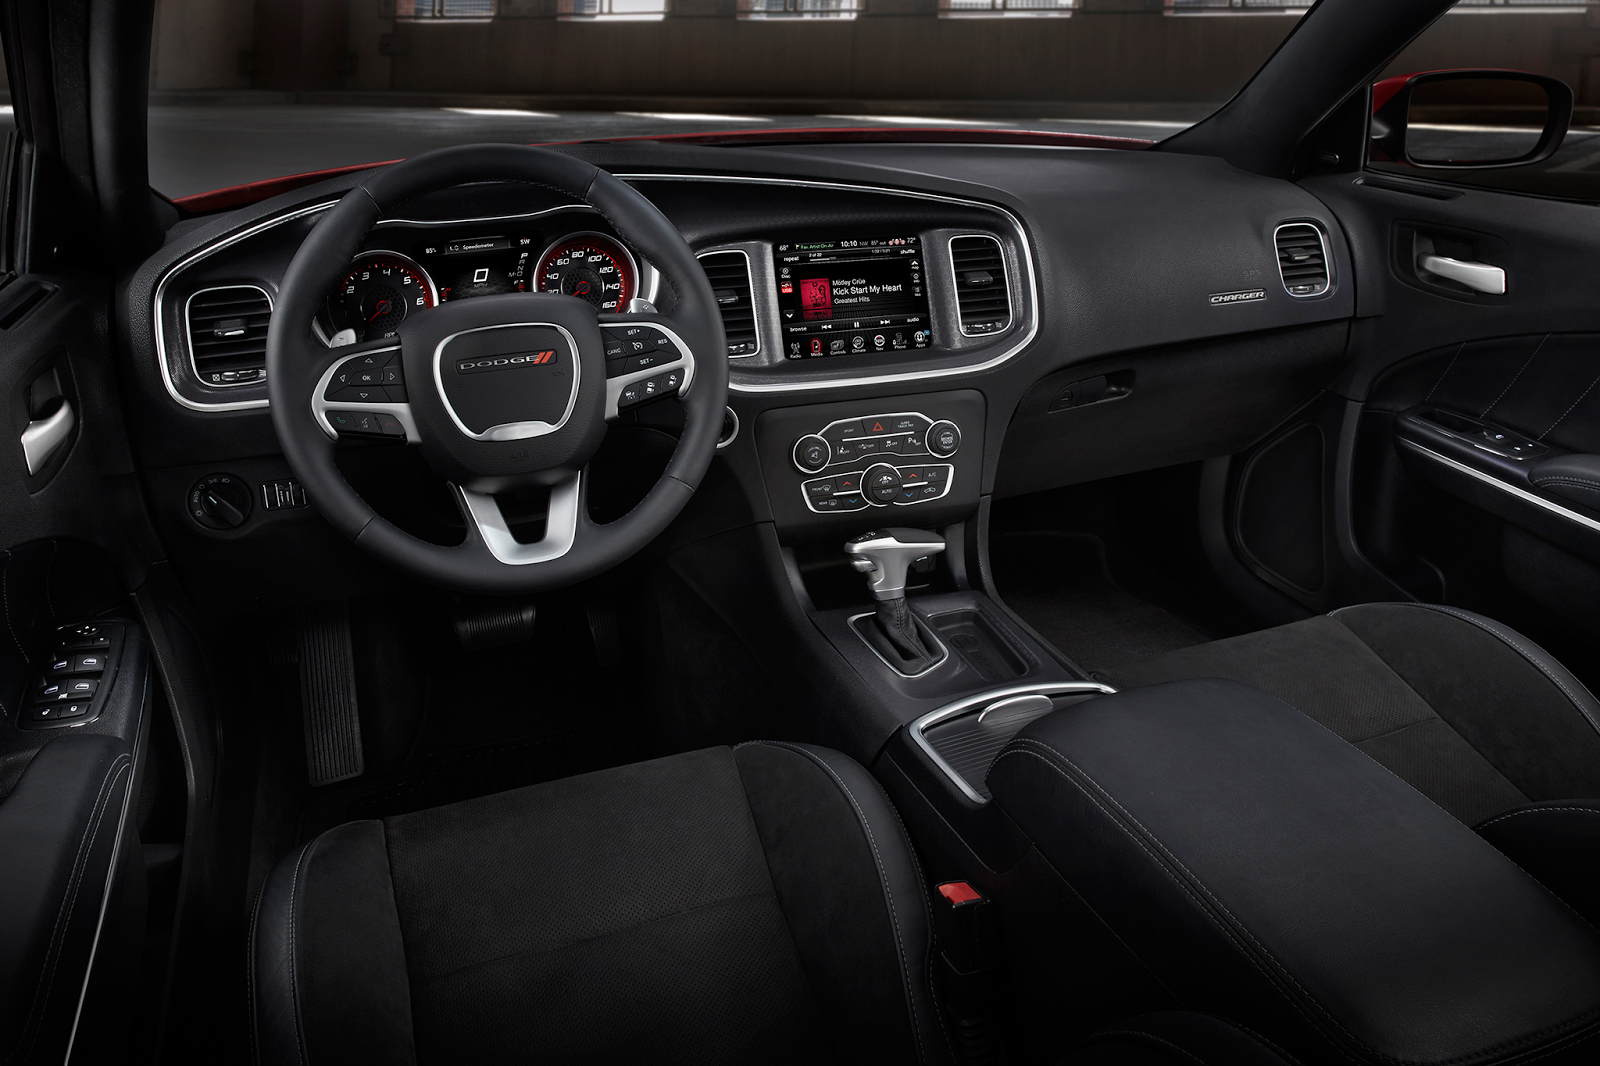 2017 Dodge Charger Interior Hawaii